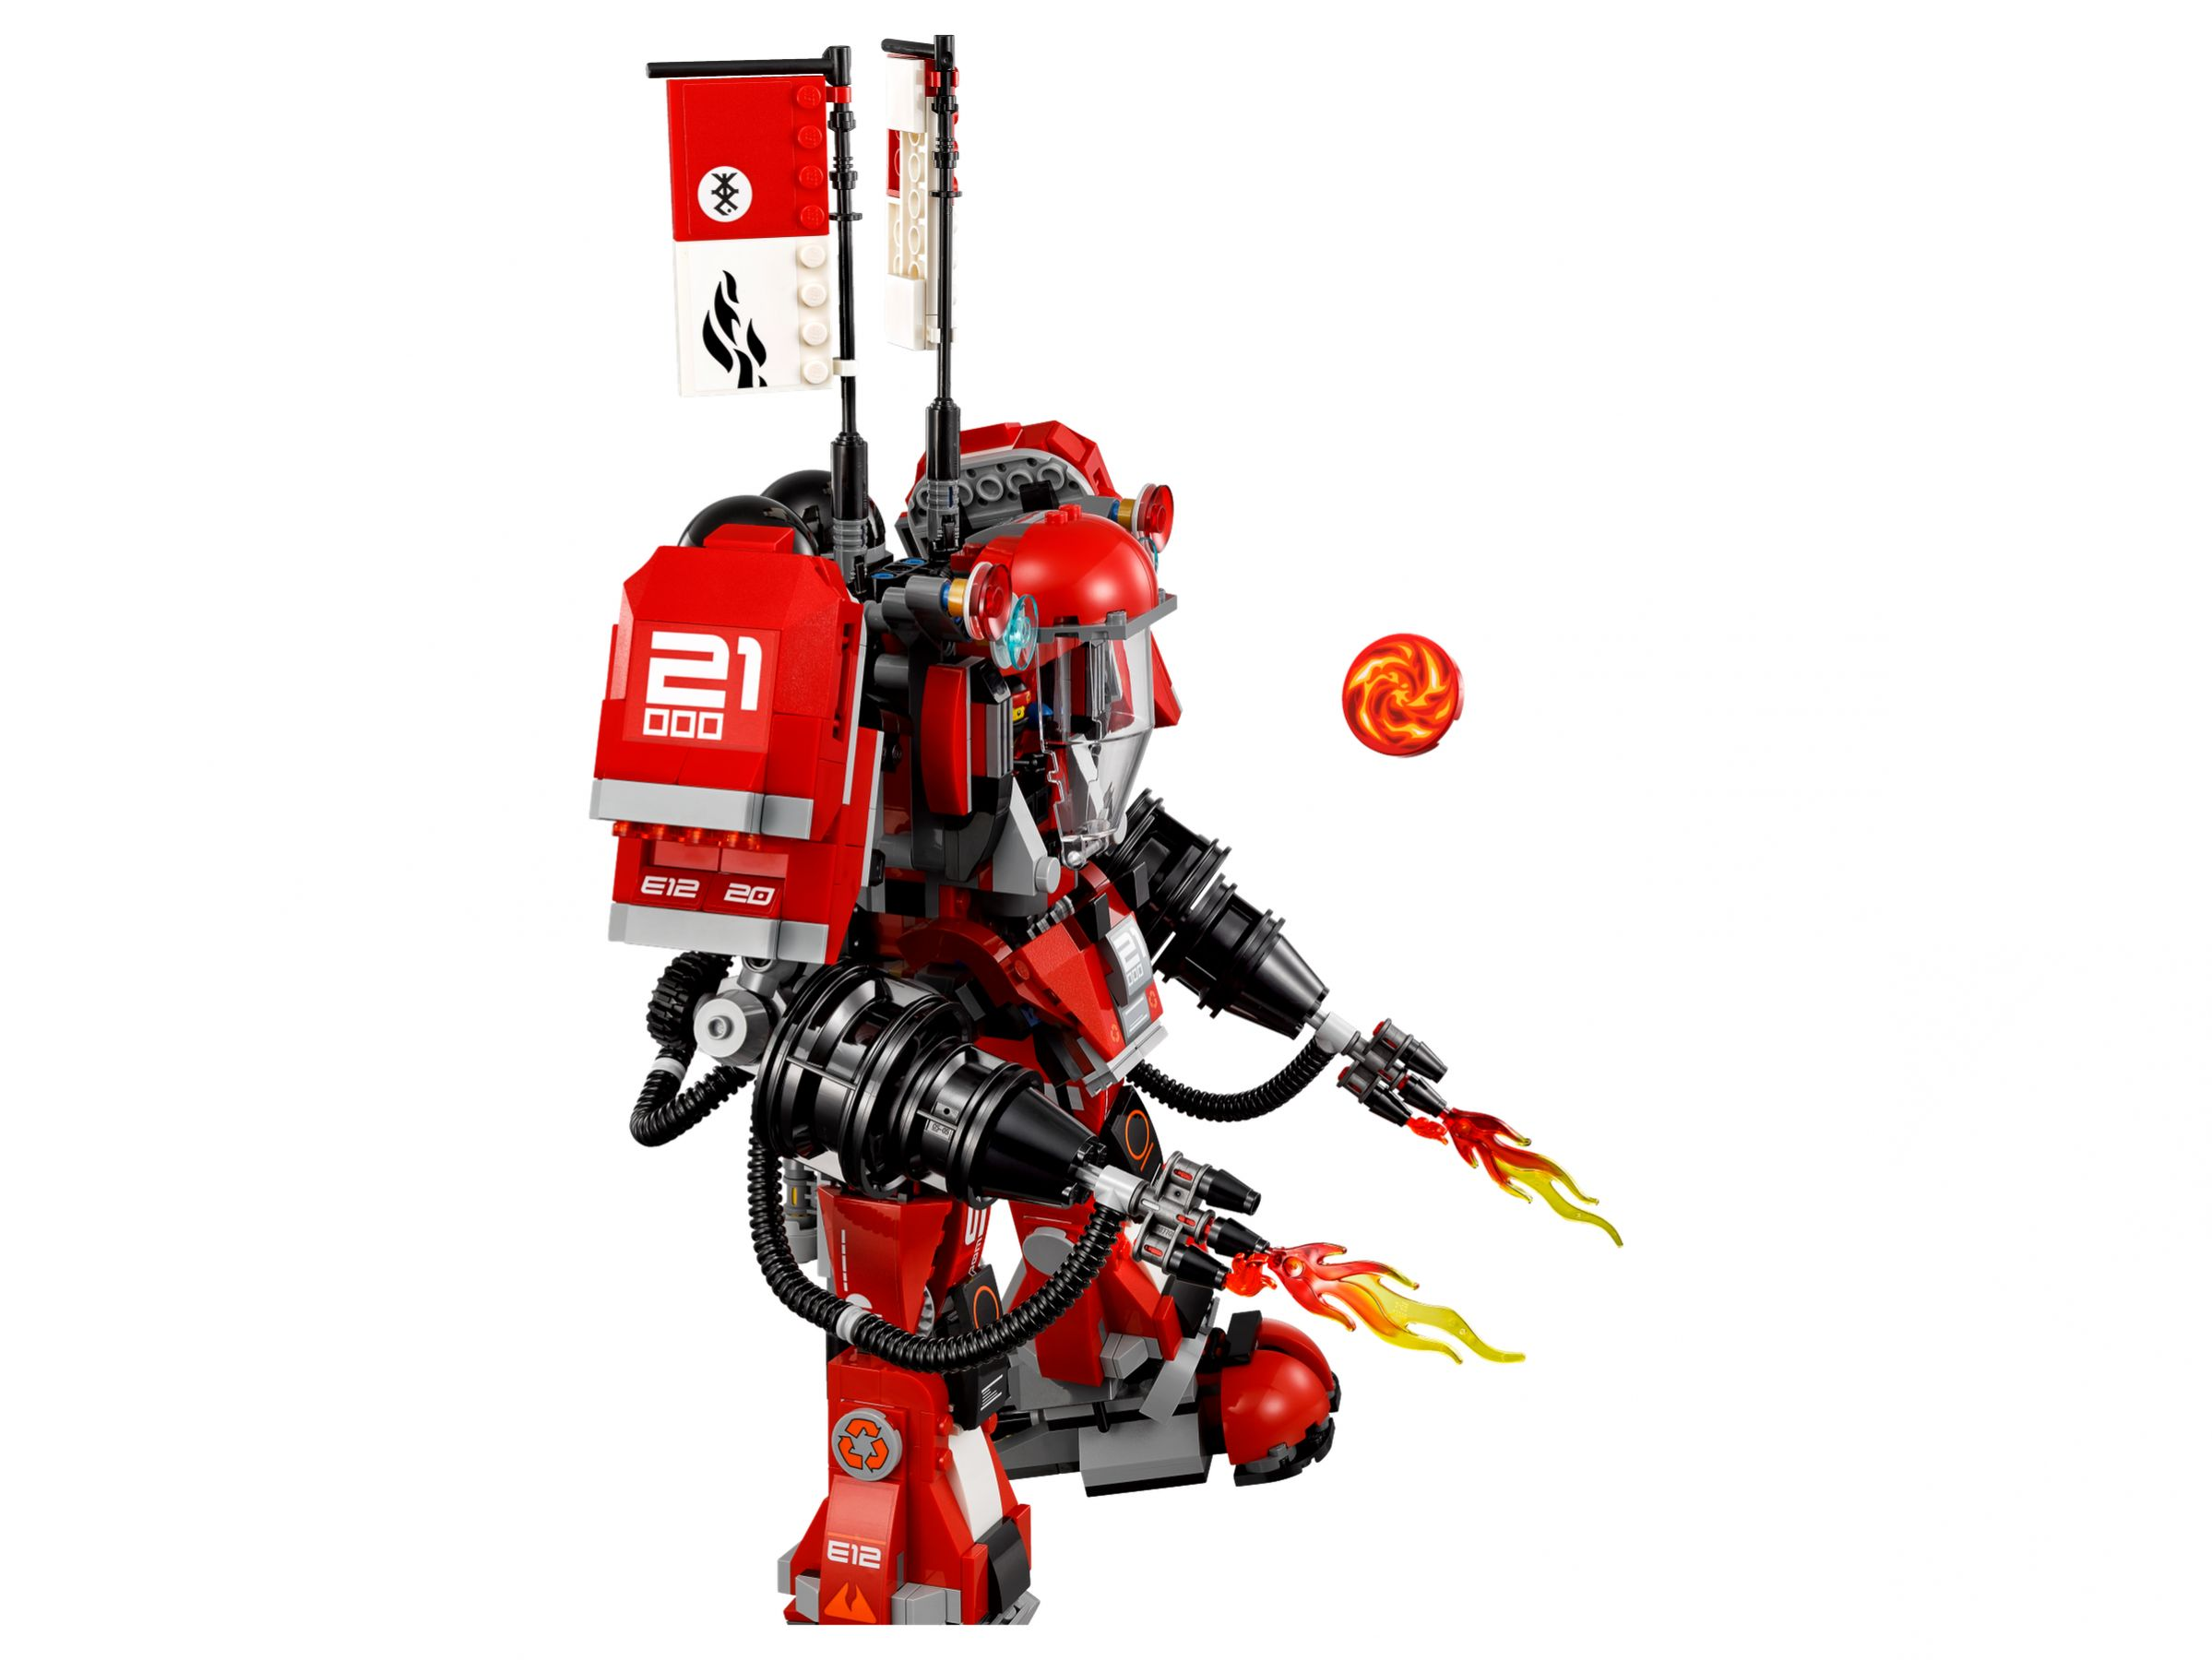 LEGO The LEGO Ninjago Movie 70615 Kai's Feuer-Mech LEGO_70615_alt4.jpg